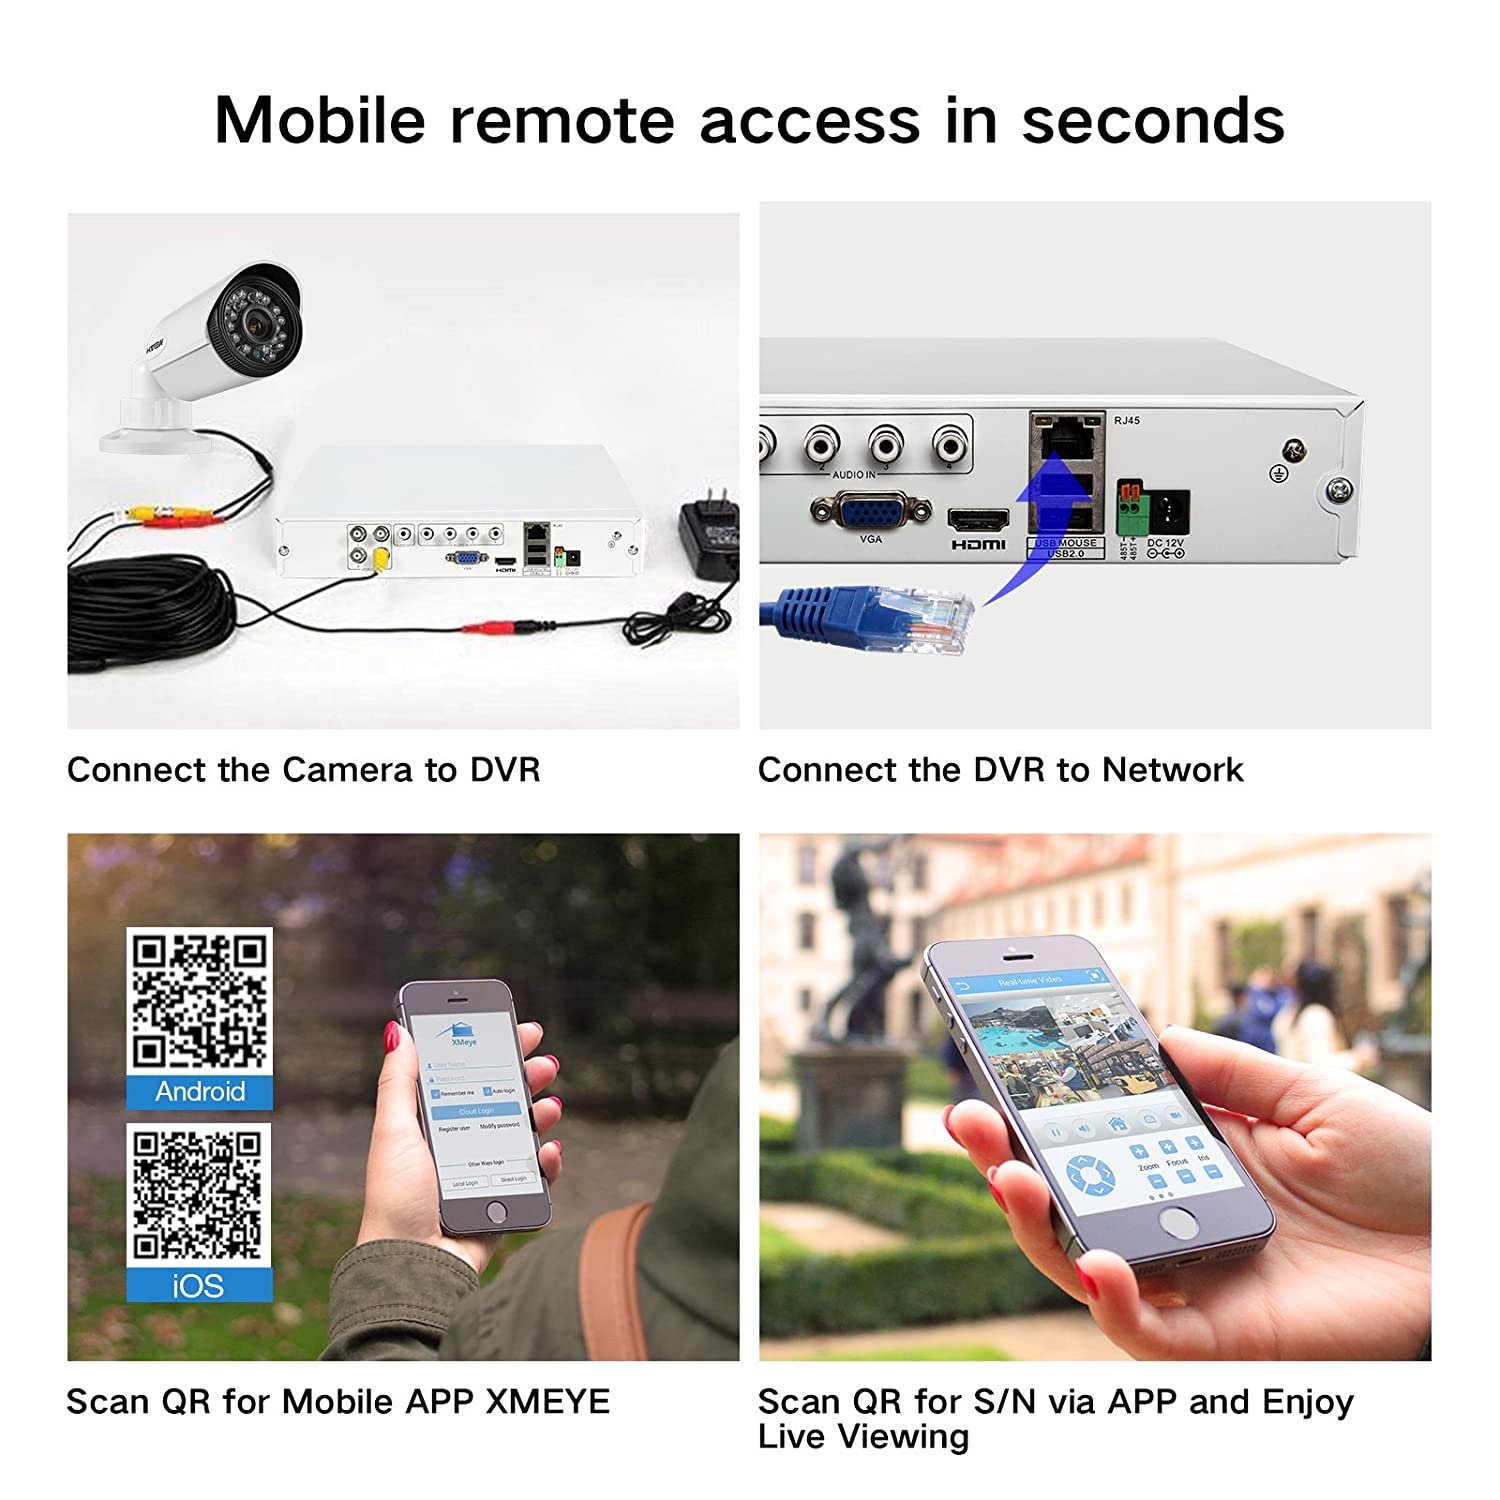 Hview Home Security Camera Systems 4 Channel H264 720p Hybrid Dvr 2channel Remote View Mobile With Shock Sensor And Wifi Recorder 2x 720p1200tvl 10 Megapixel Day Night Vision Ir Weatherproof Outdoor Cctv